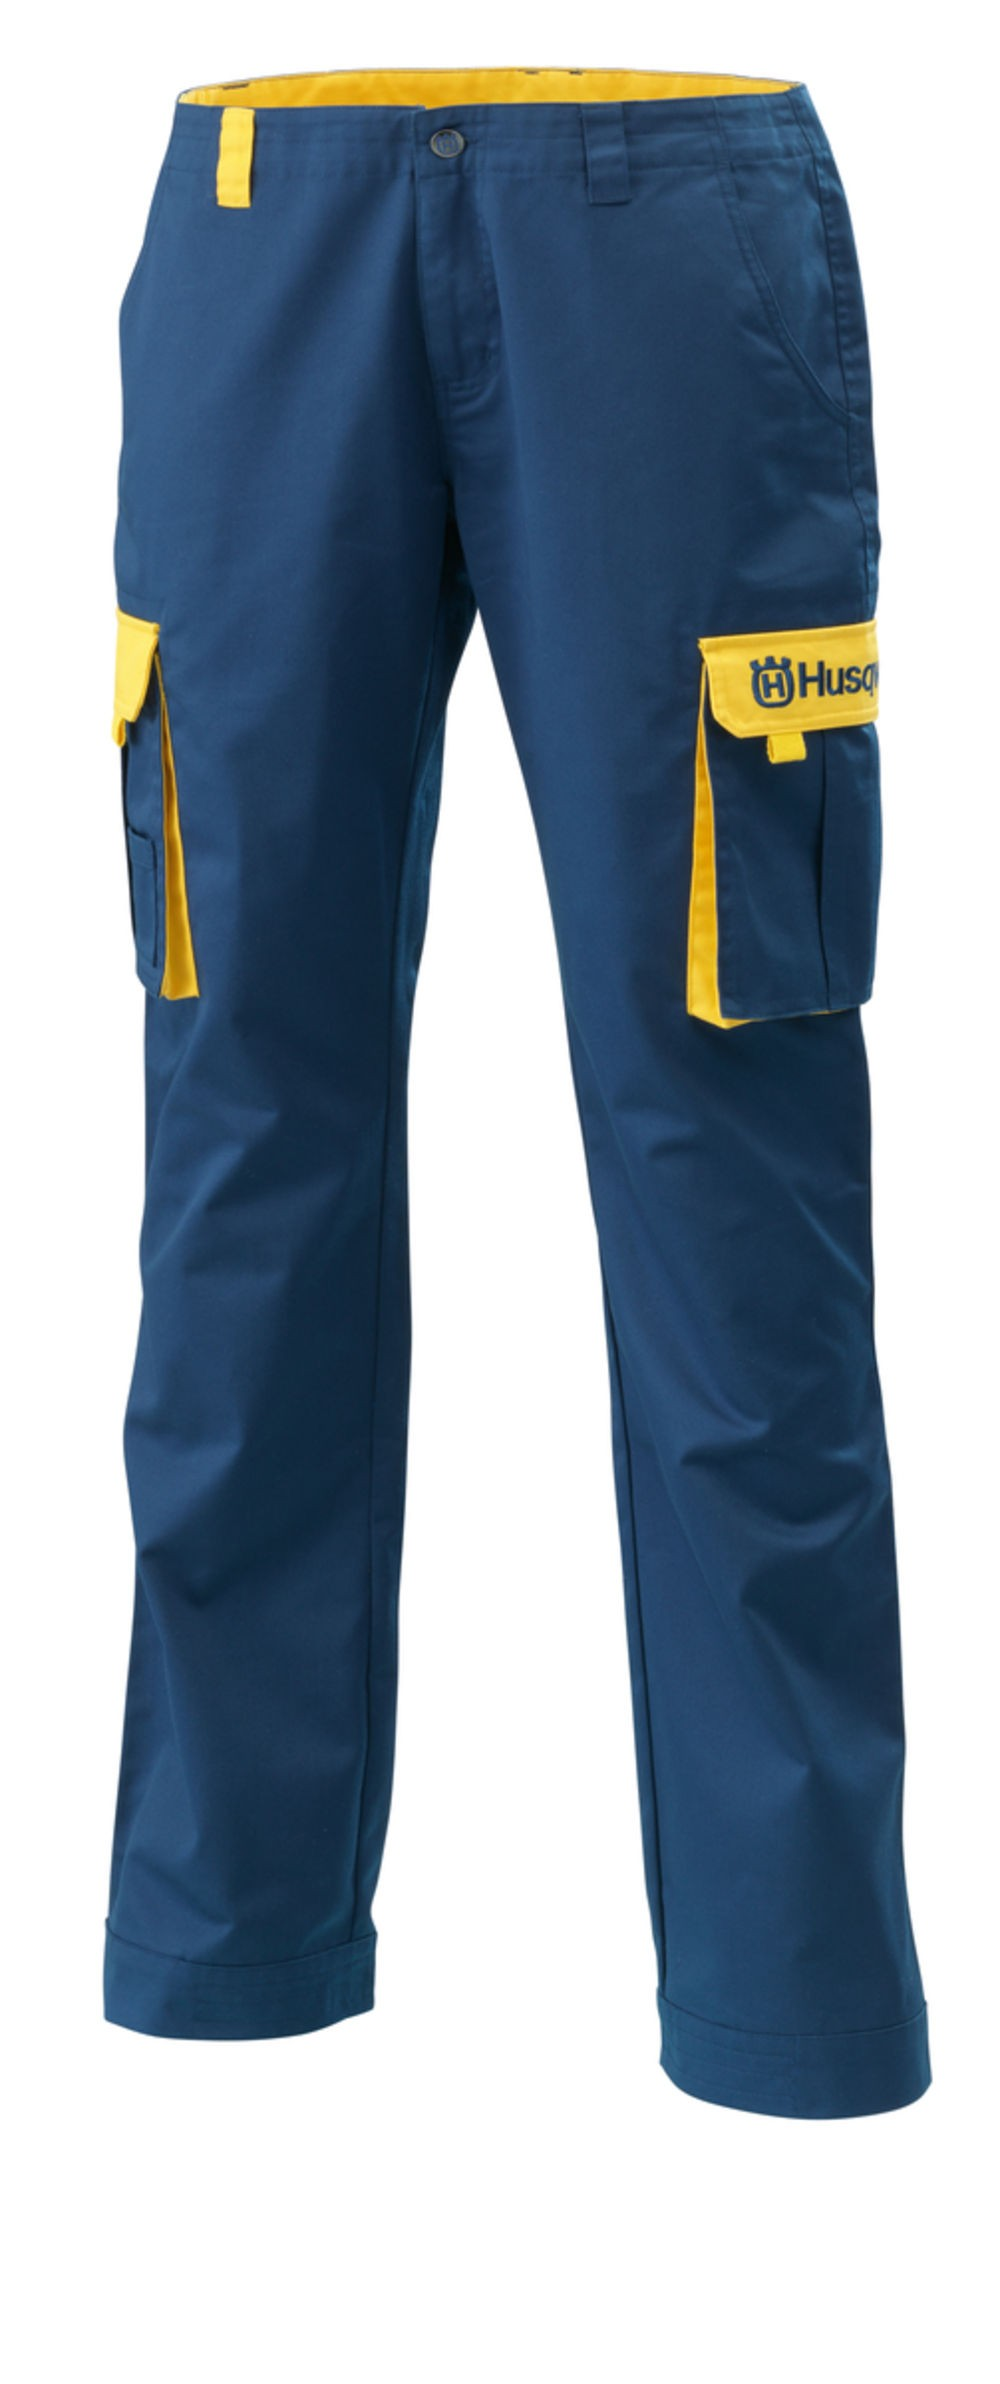 PANTALONI TEAM LONG PANTS HUSQVARNA